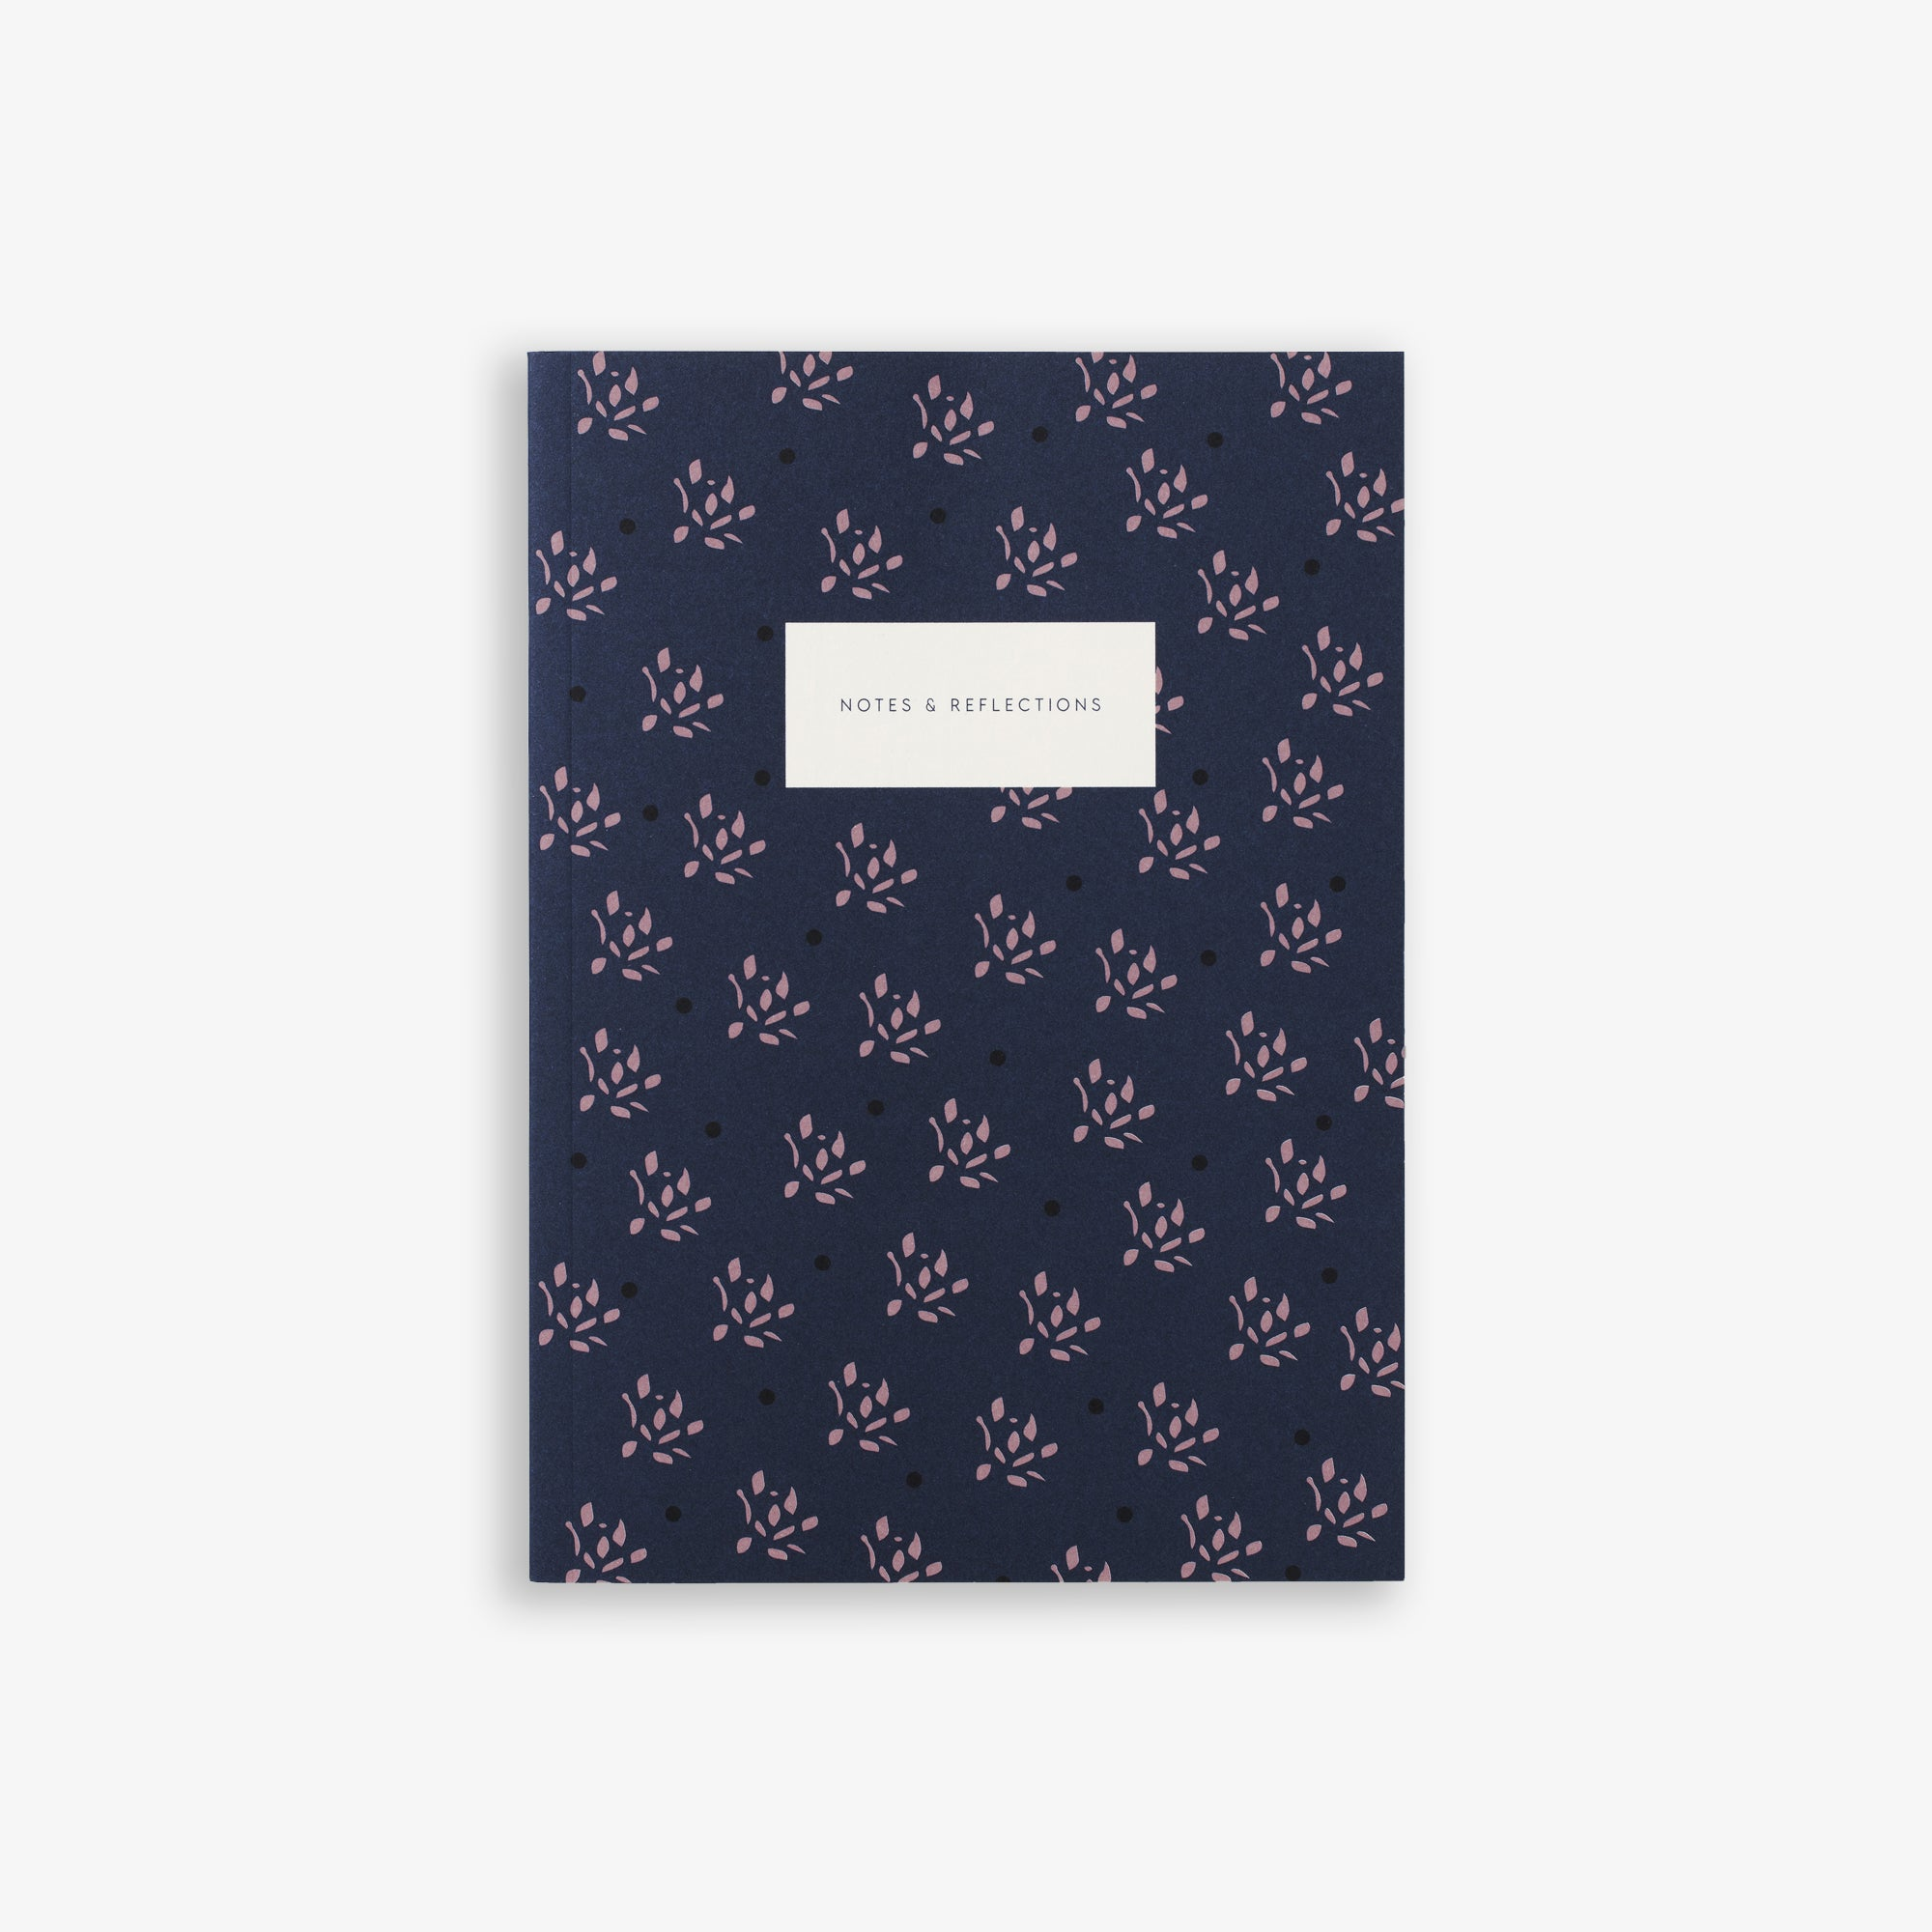 SMALL NOTEBOOK FLORAL NAVY